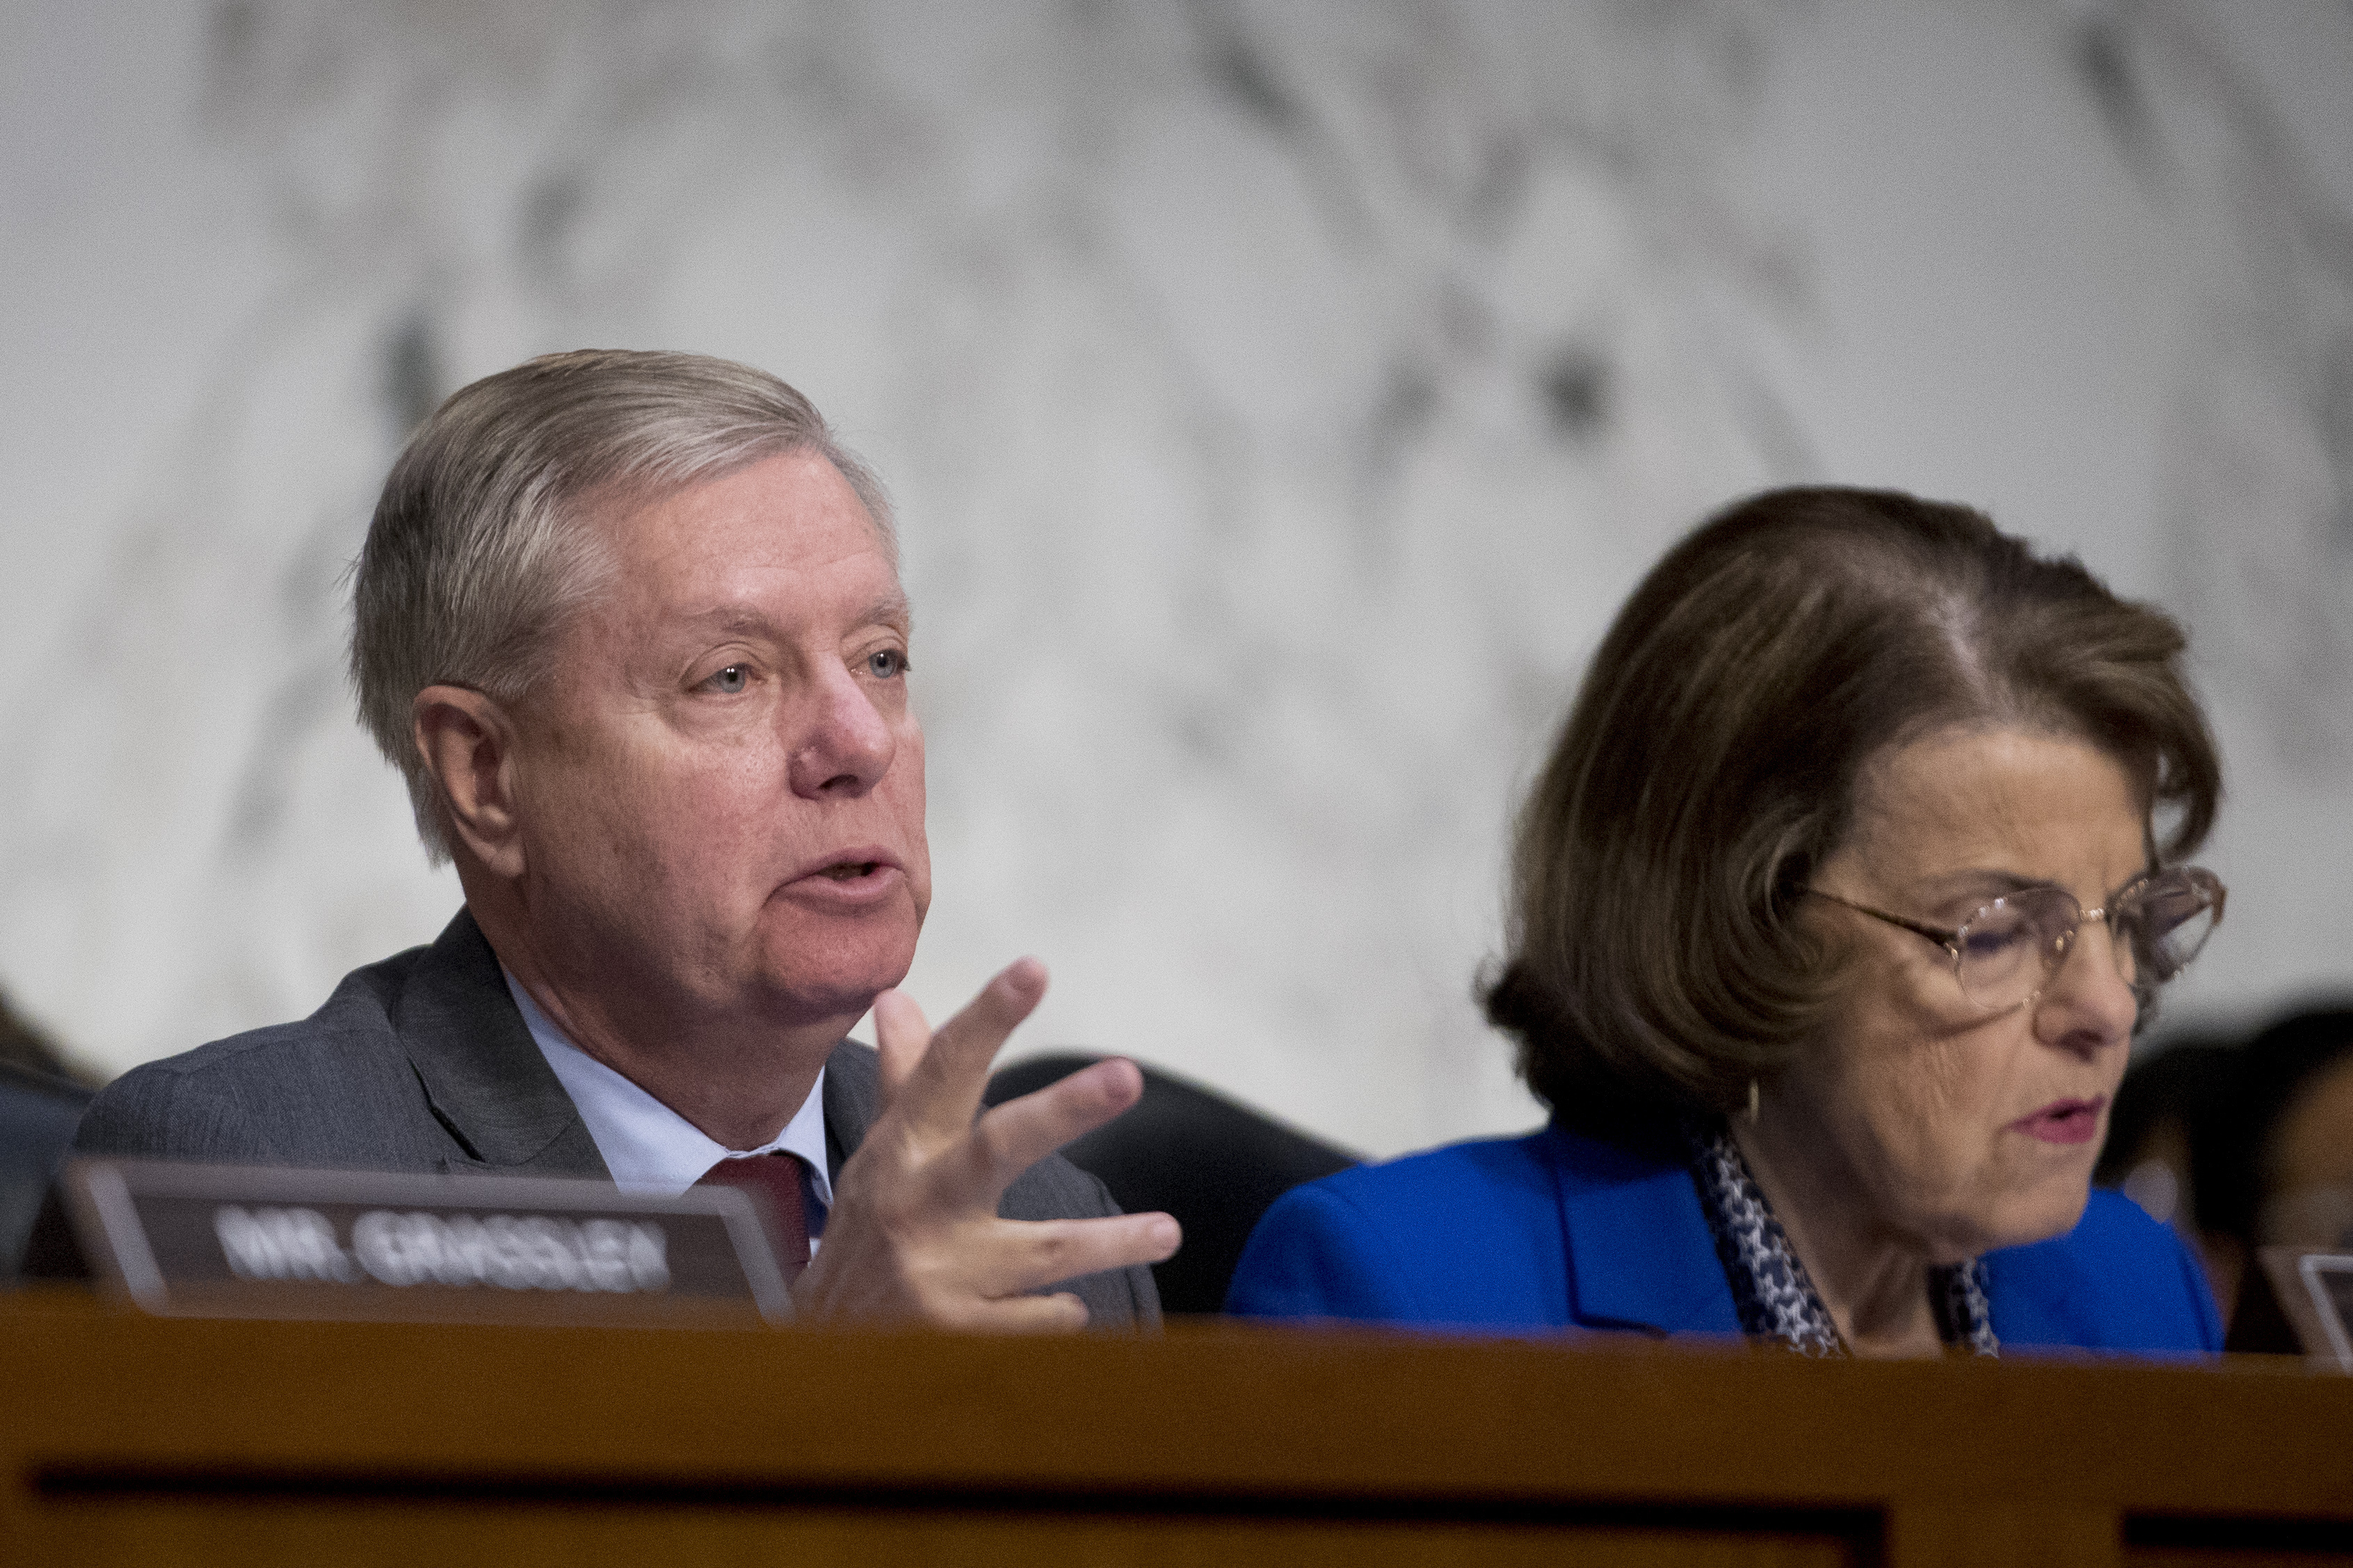 Senate Judiciary Committee Chairman Lindsey Graham, R-S.C., accompanied by Ranking Member Sen. Dianne Feinstein, D-Calif.,(R) questions Attorney General nominee William Barr during a Senate Judiciary Committee hearing on Capitol Hill in Washington, J...